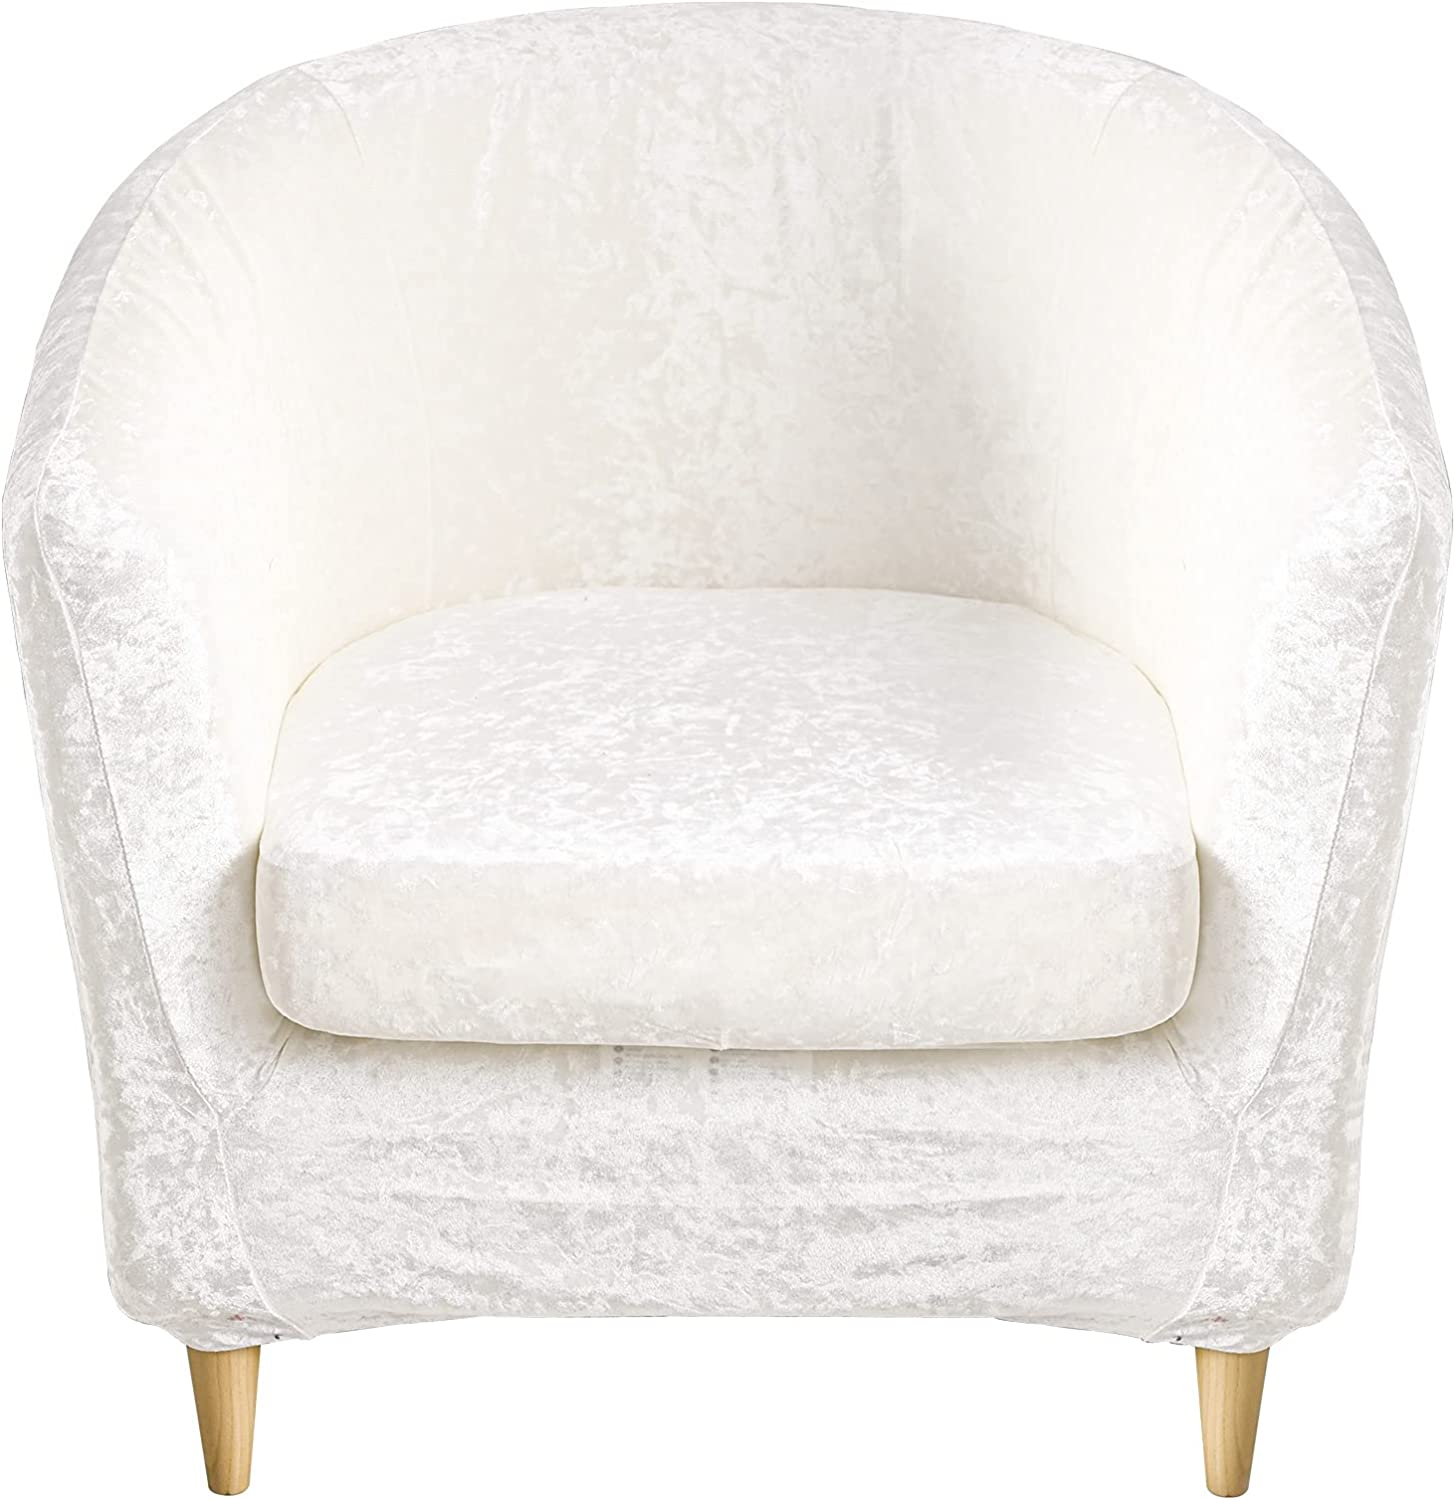 2 Piece Tub Chair Large special price Covers Velvet Stretch Slipc Crushed Club Max 67% OFF